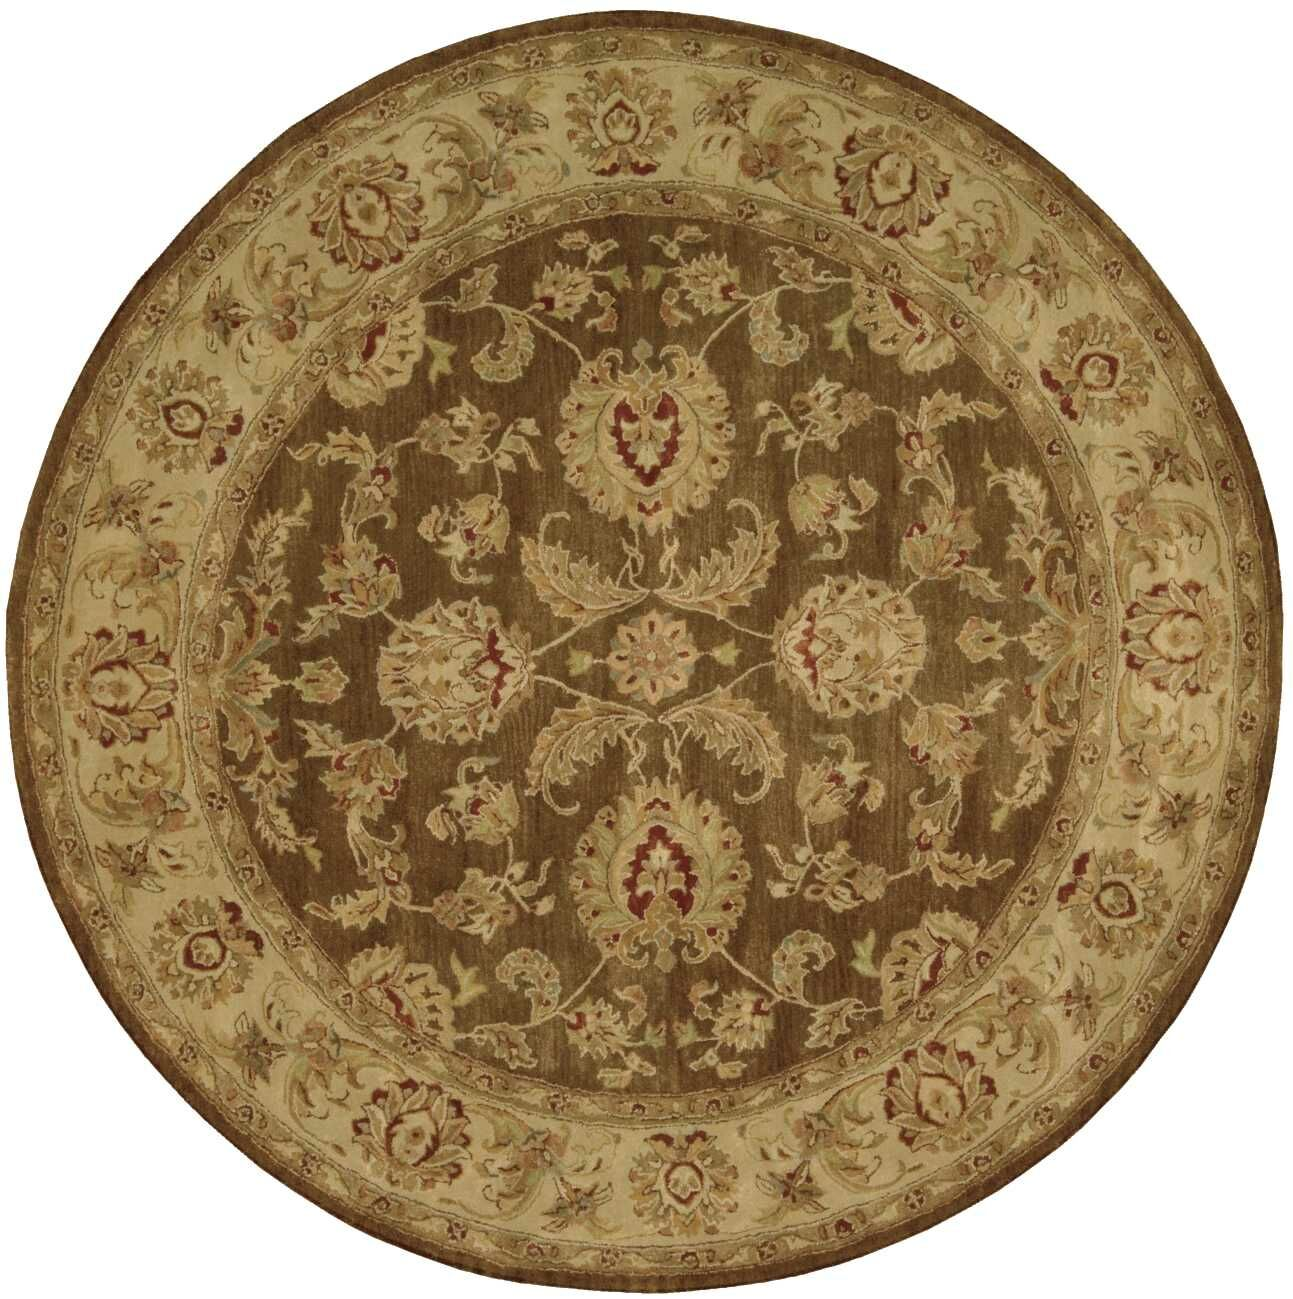 Delaware Hand-Tufted Brown Area Rug Rug Size: Round 6'